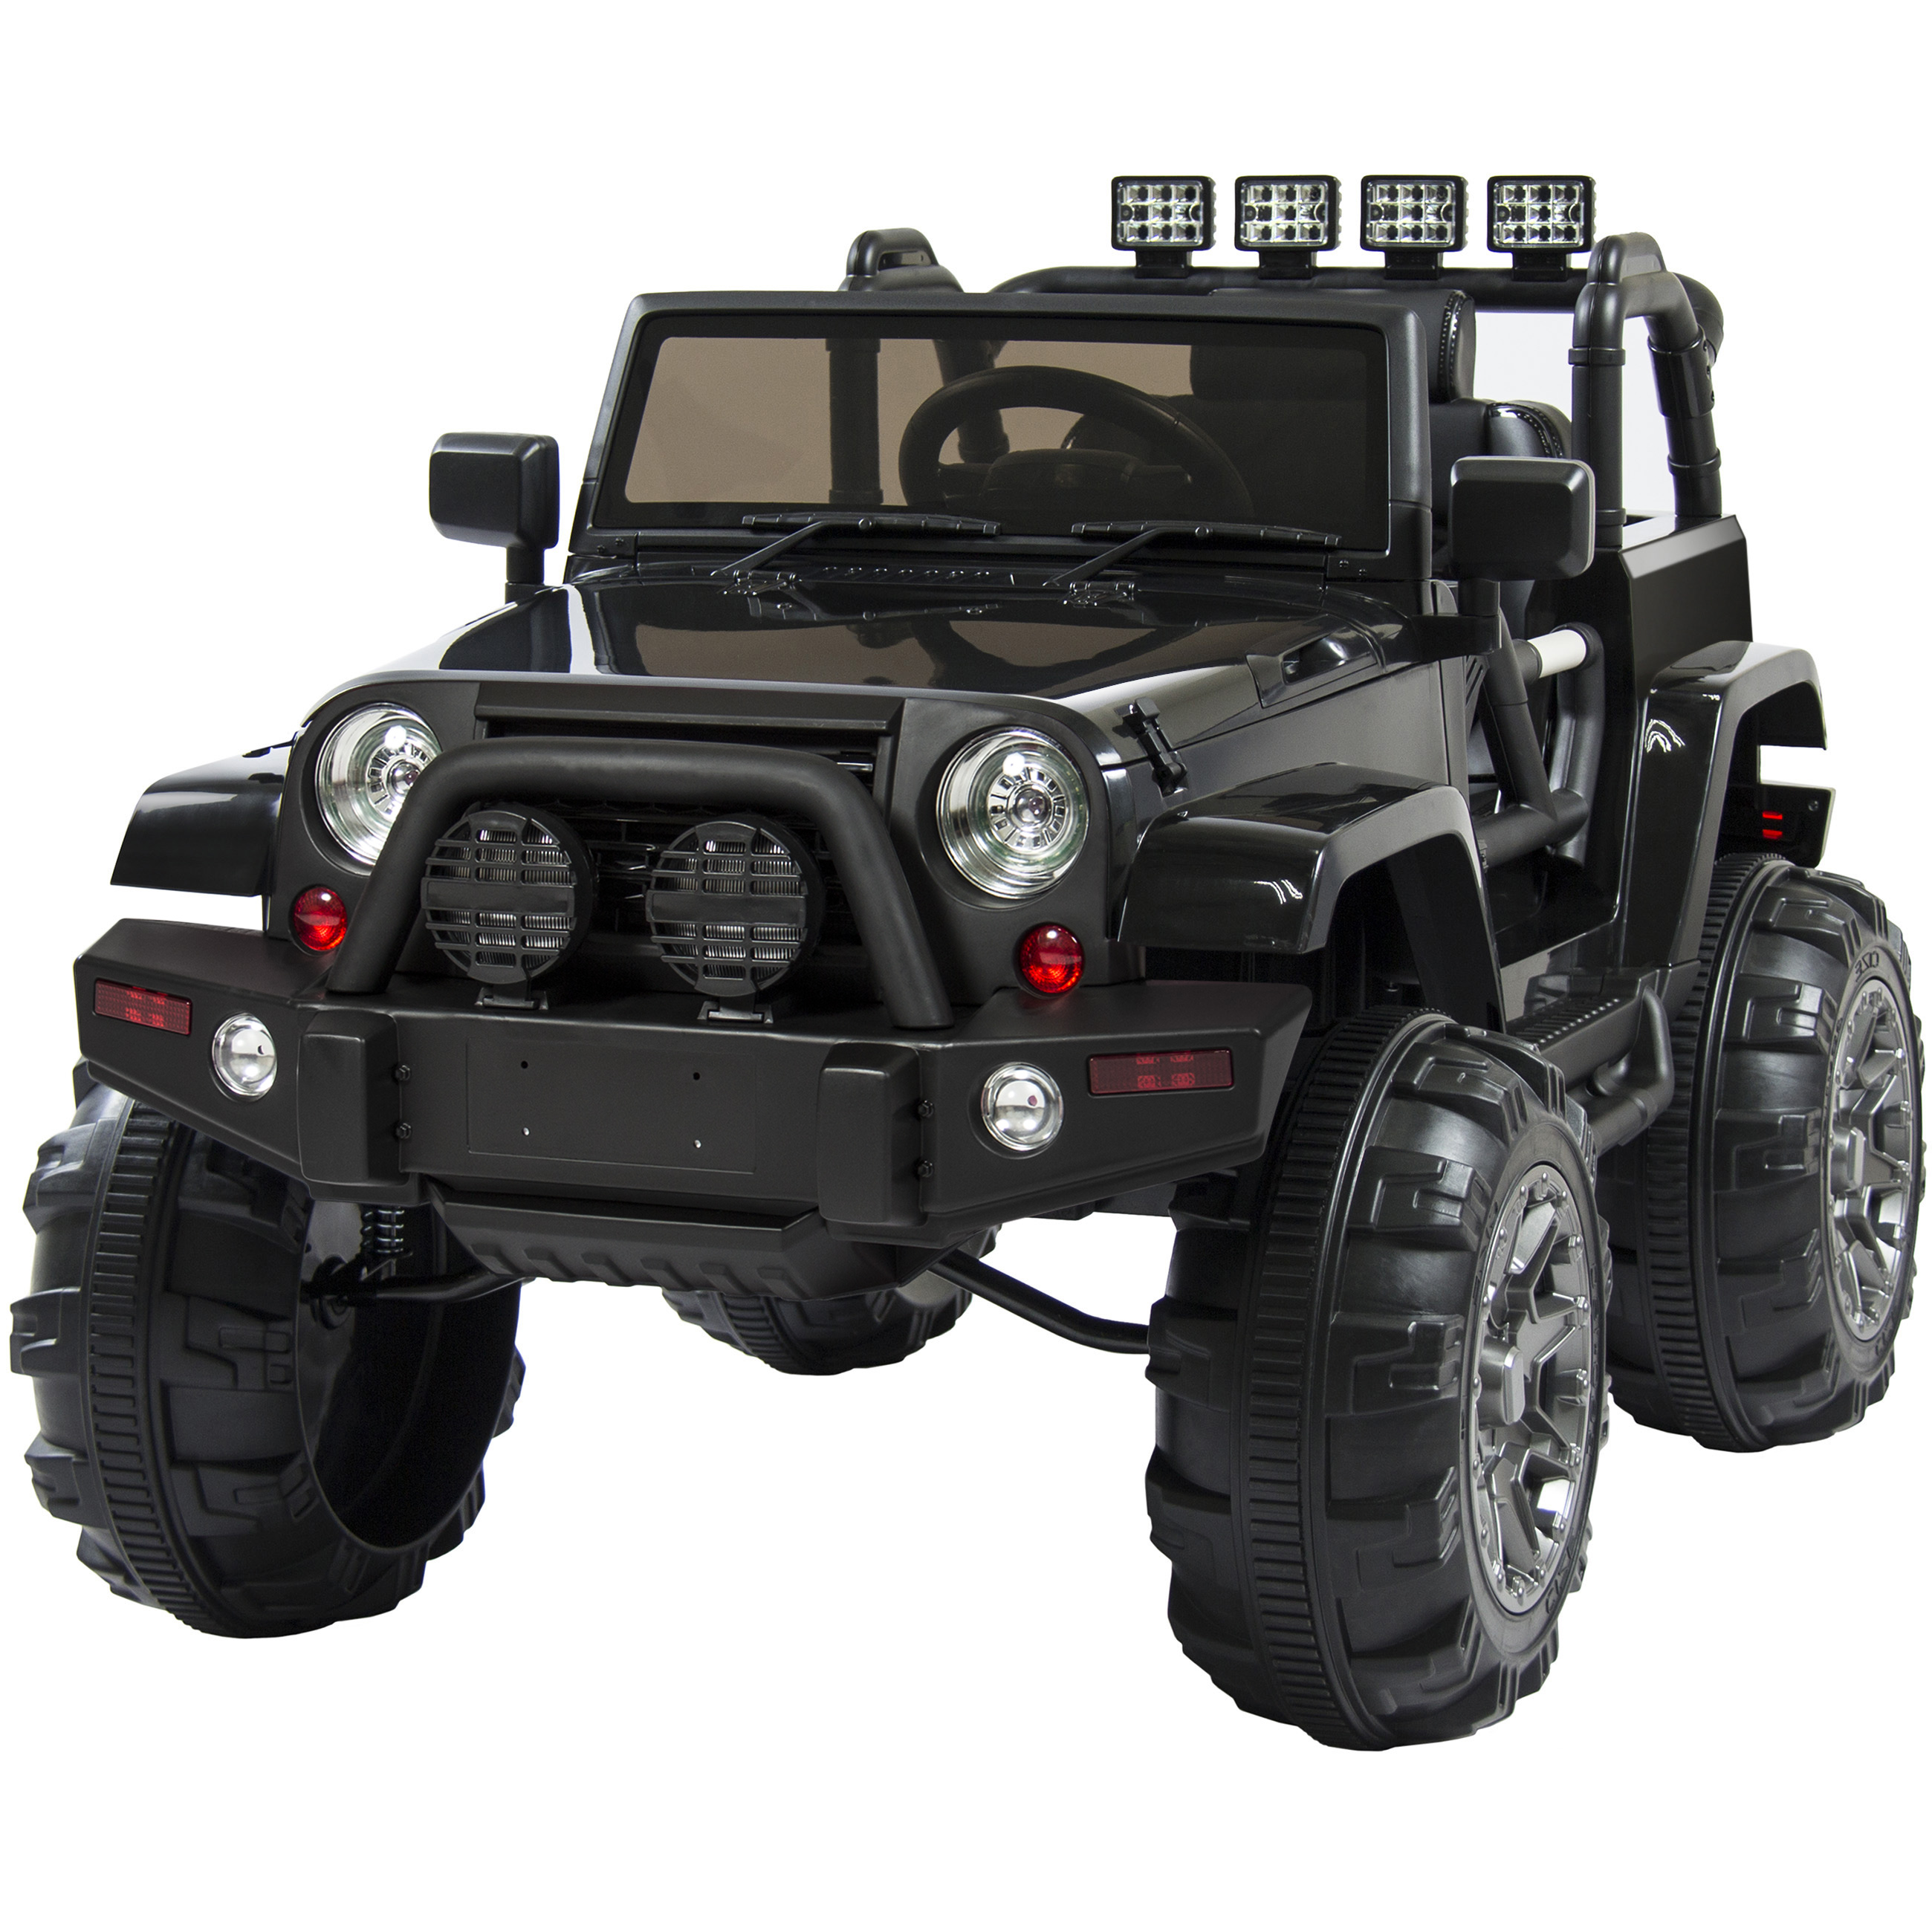 electric jeep for kids images galleries with a bite. Black Bedroom Furniture Sets. Home Design Ideas